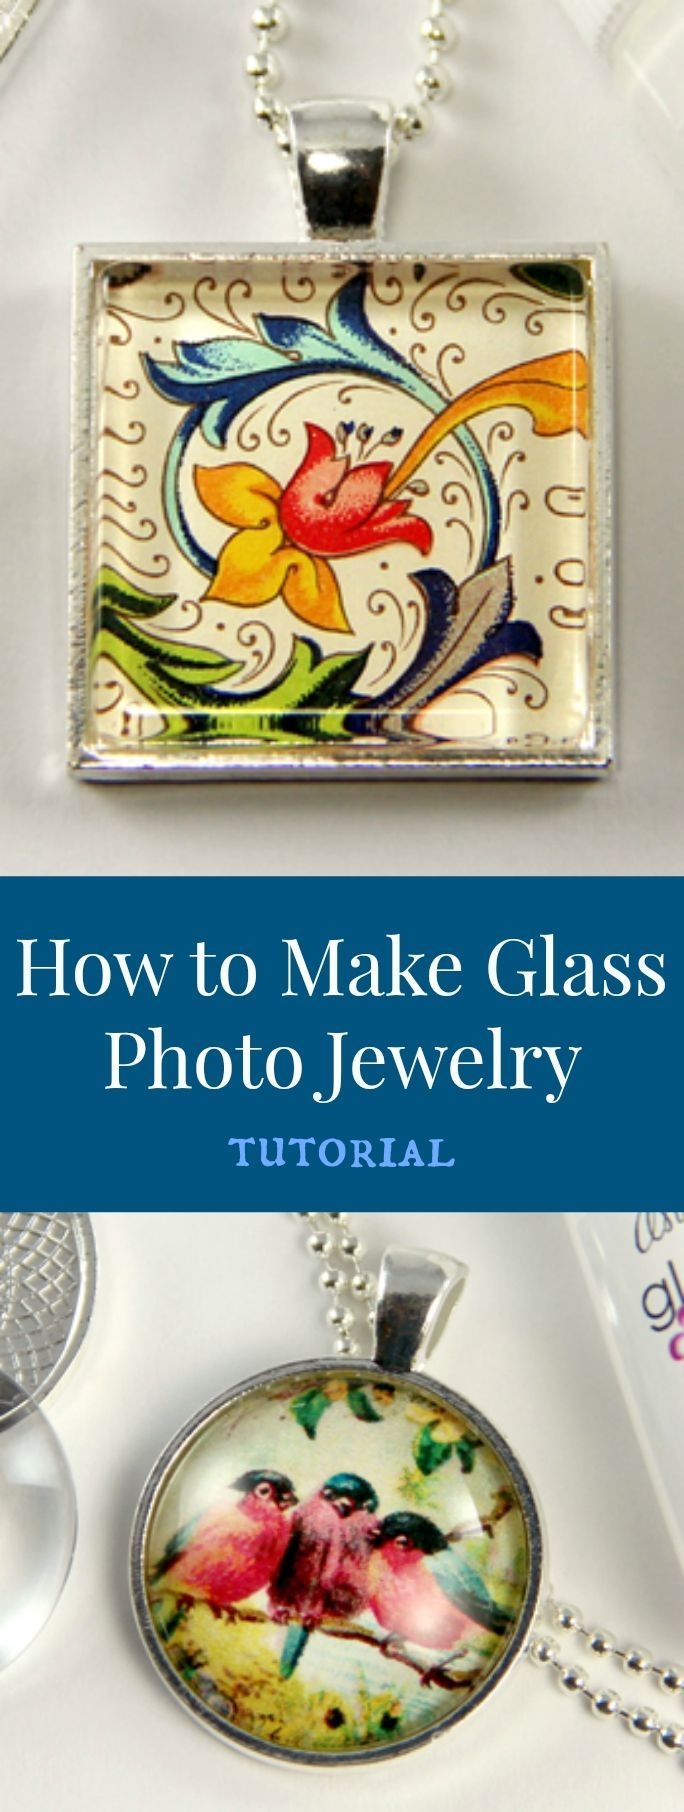 How to decorate glasses with polymer clay and how to make rings for napkins from thermoplastics